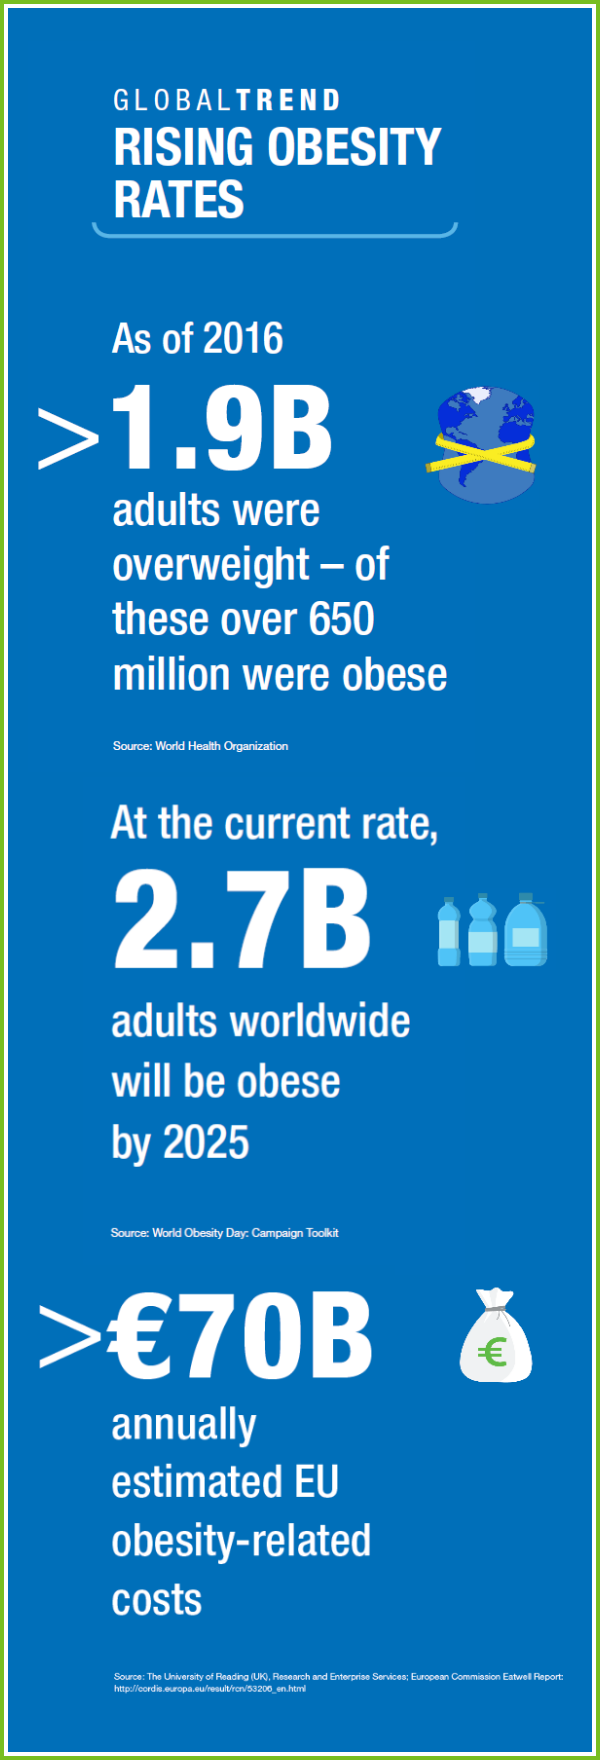 Global Trend: Rising obesity rates